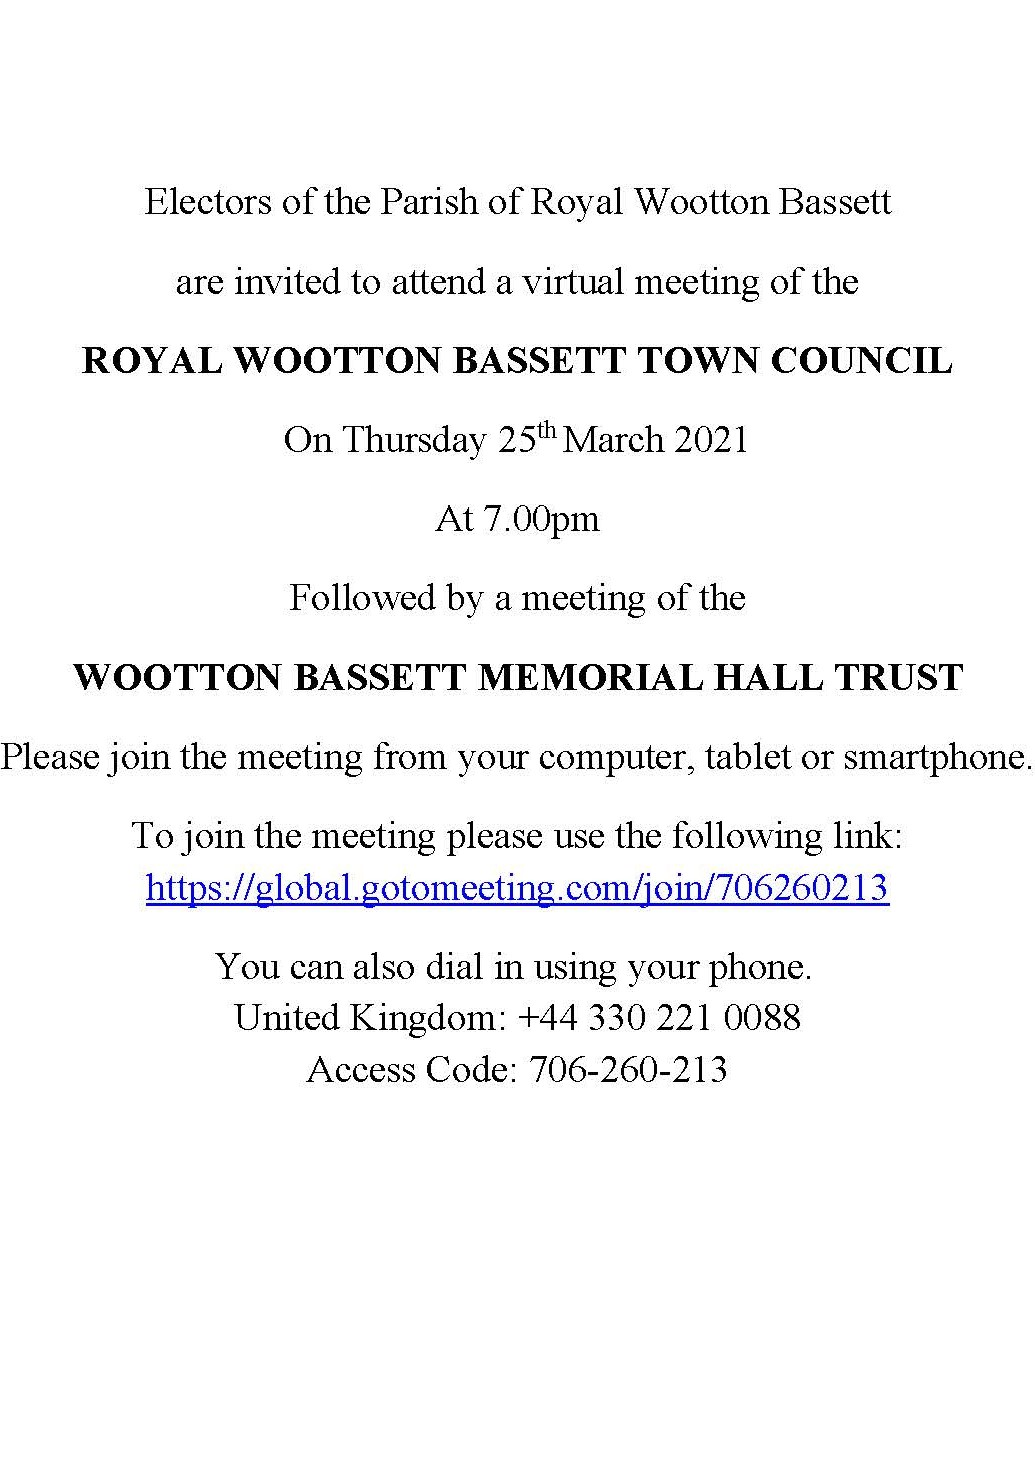 Full Council Meeting Notice - Thursday 25th March 2021